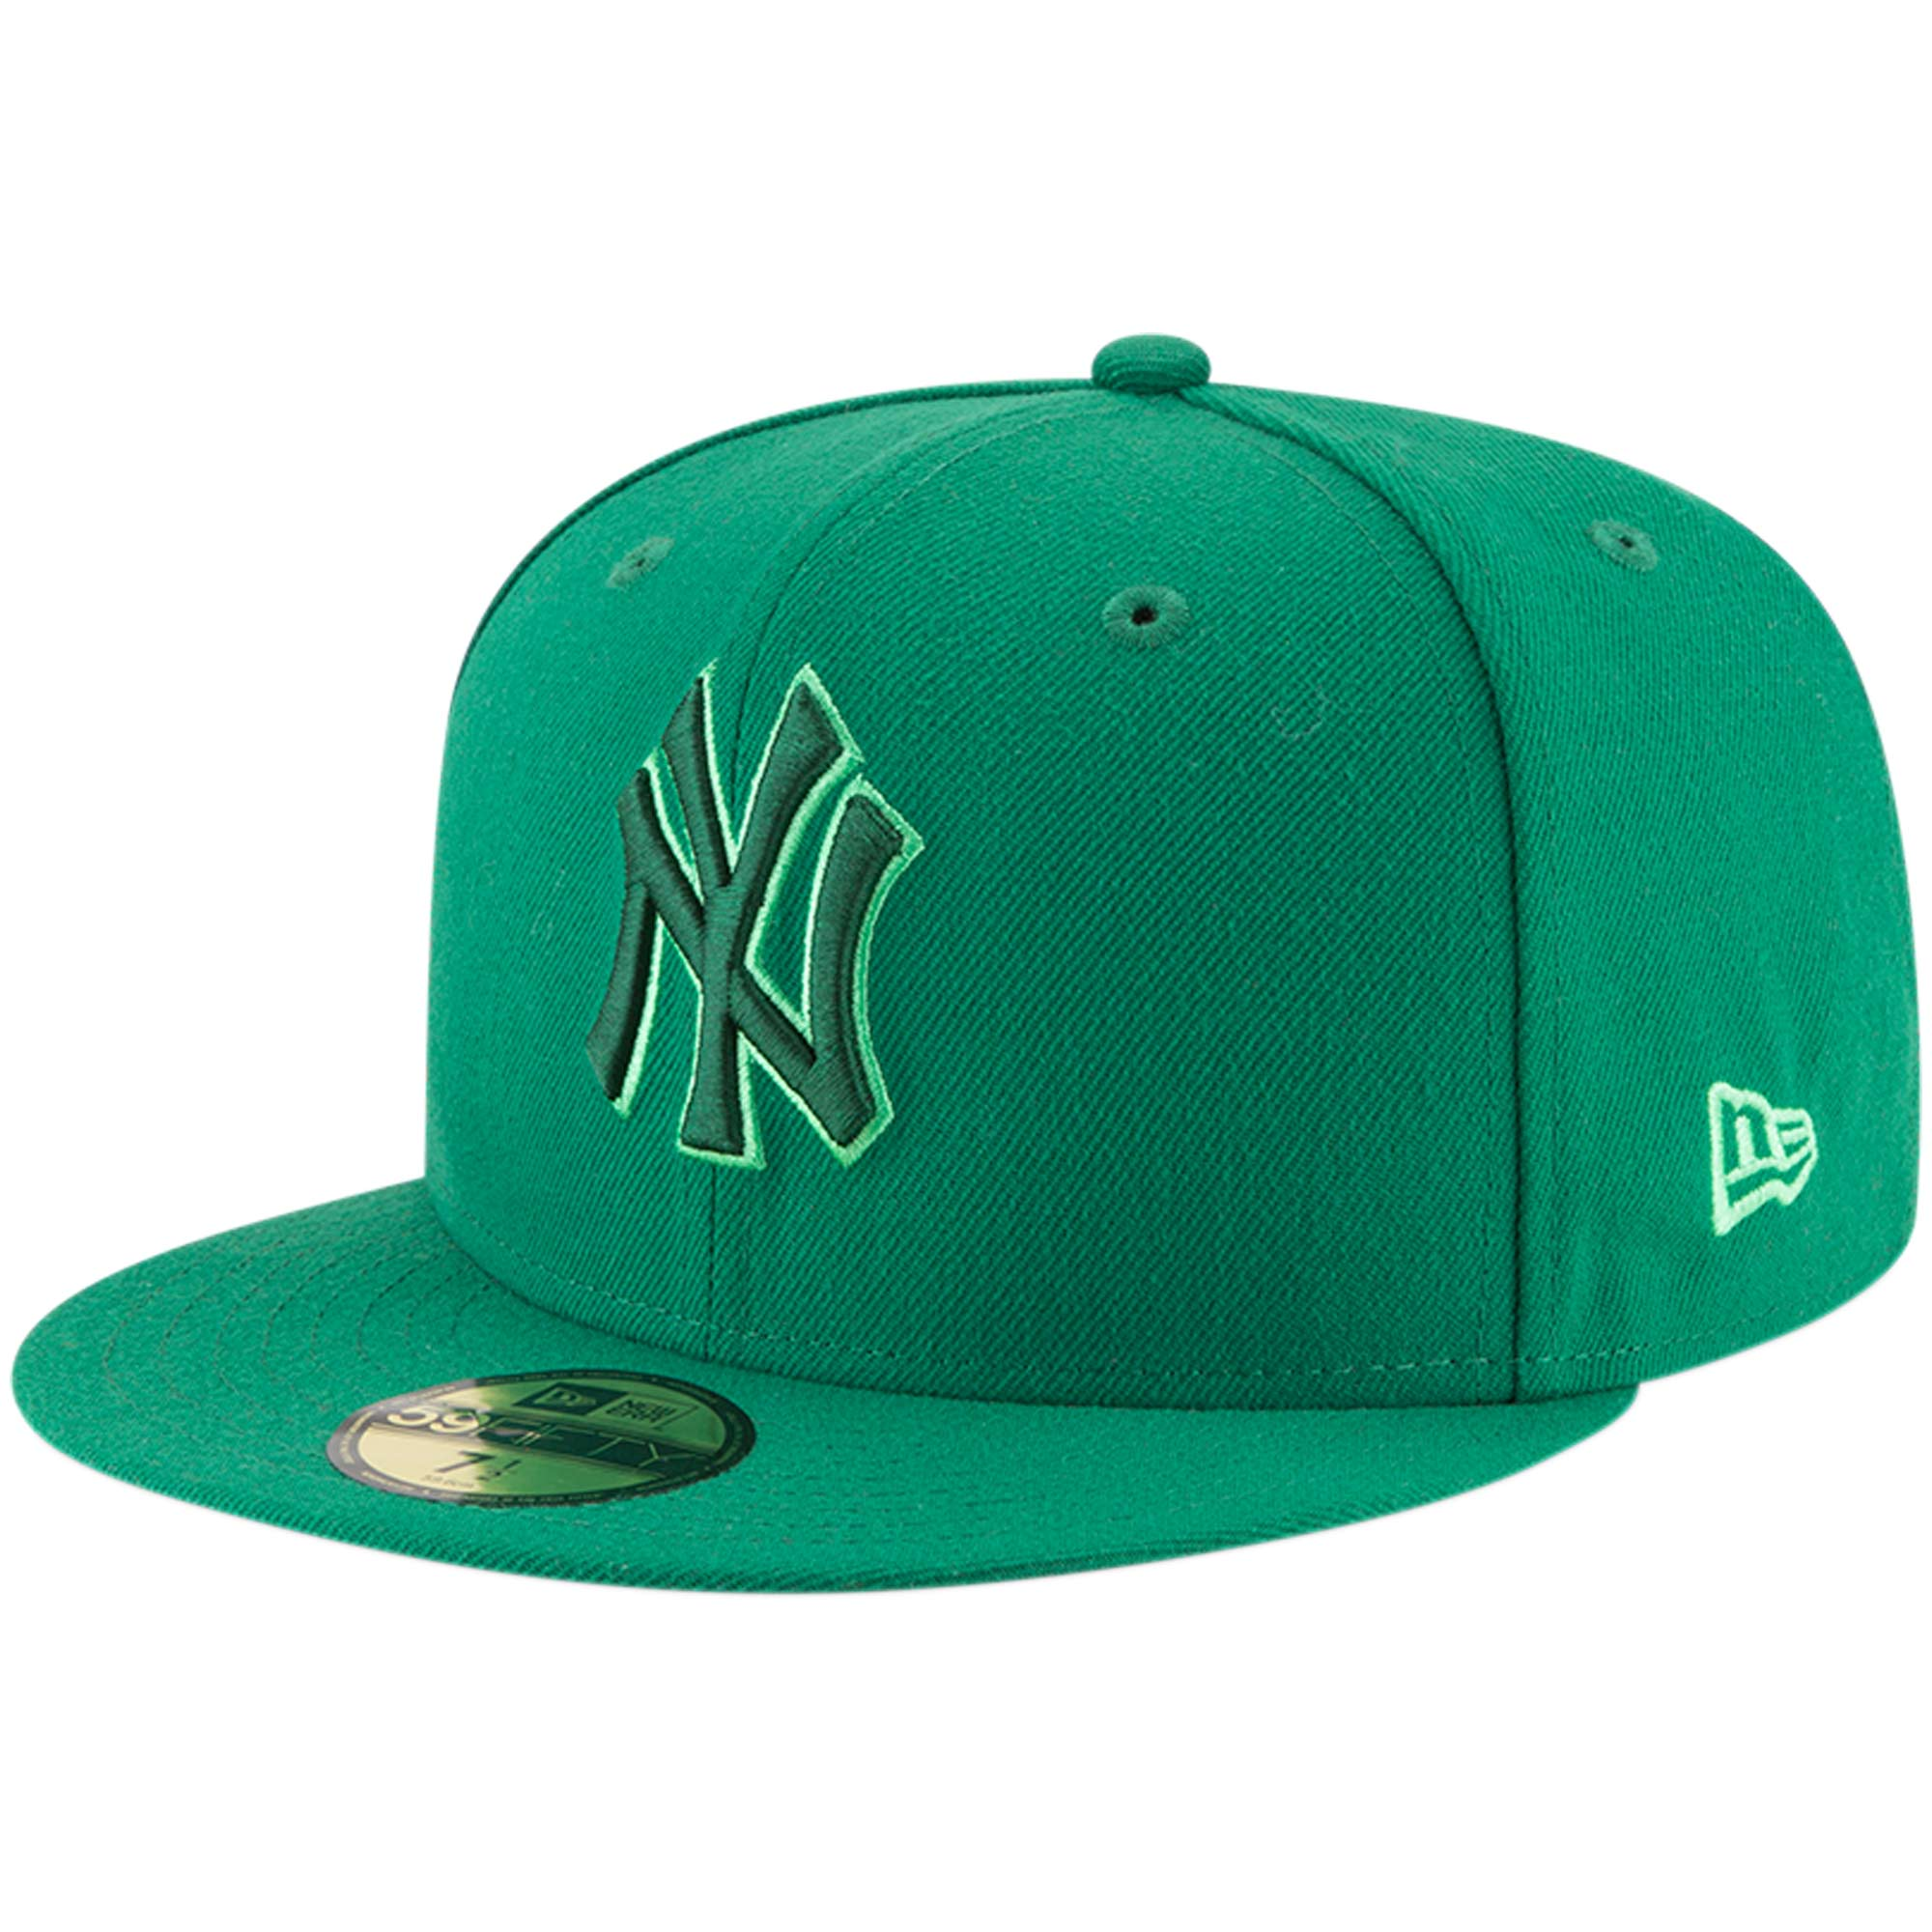 New York Yankees New Era League Pop 59FIFTY Fitted Hat - Green